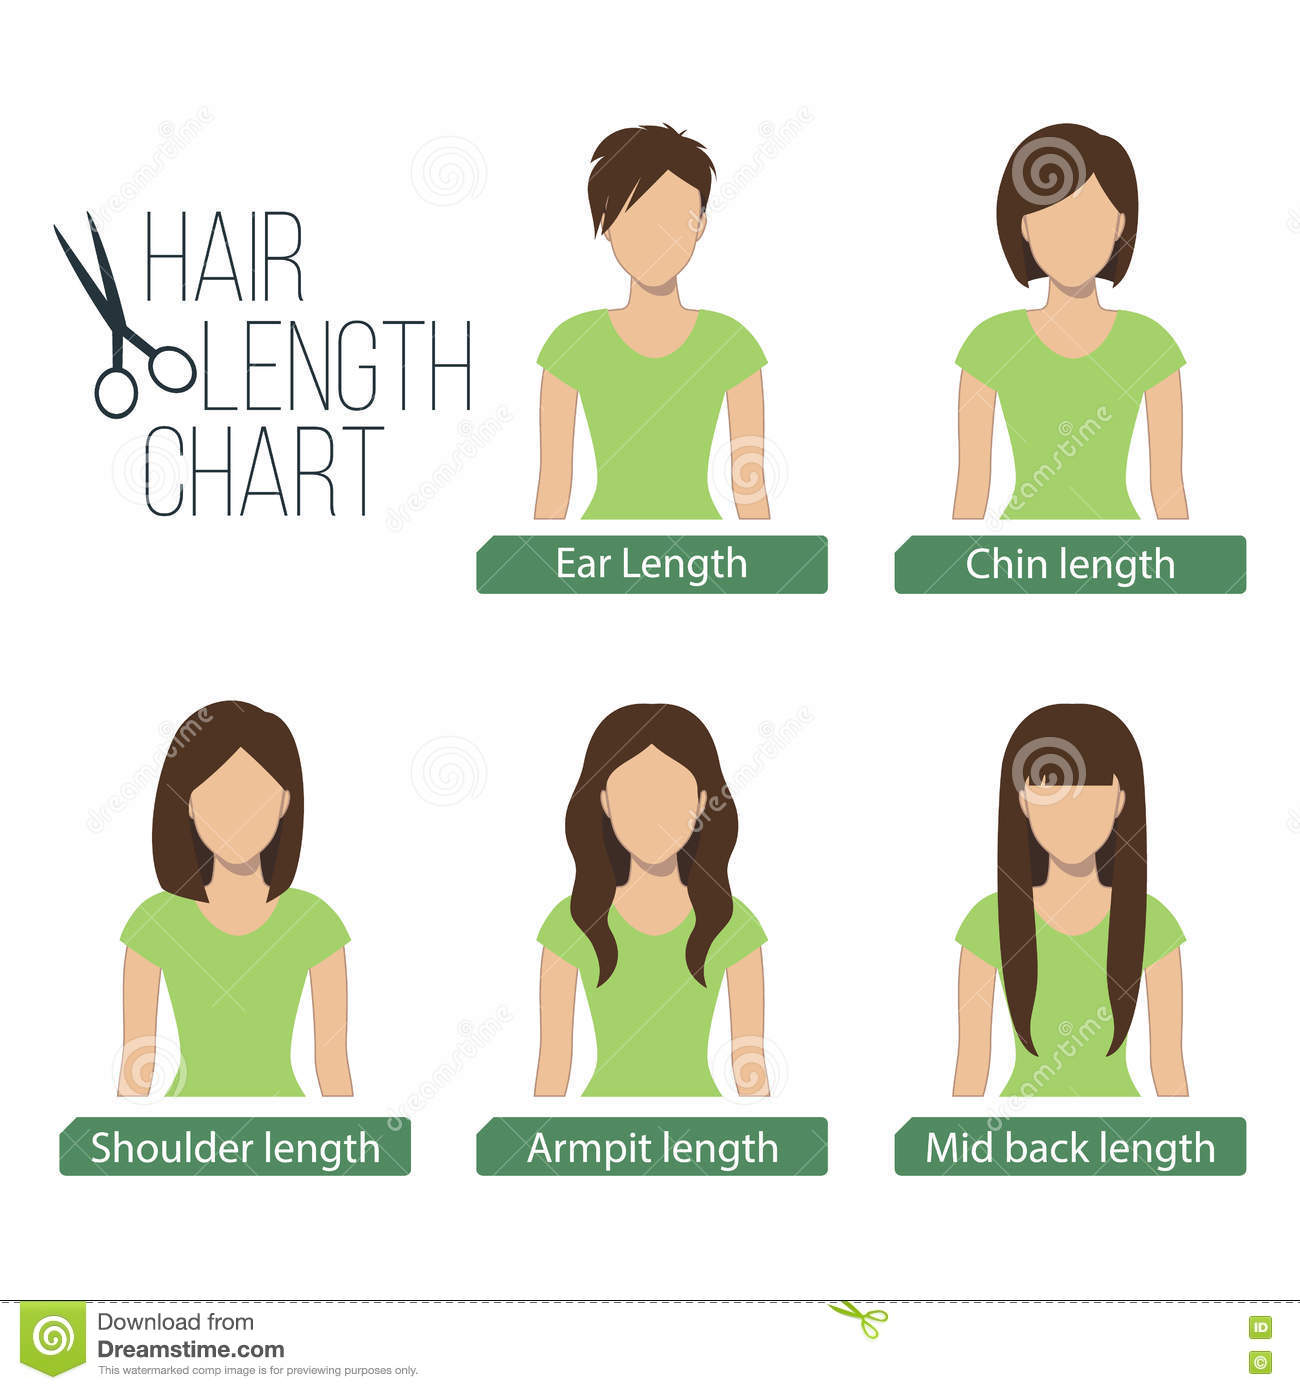 Hair Length Chart Front View Stock Vector Image 74671600